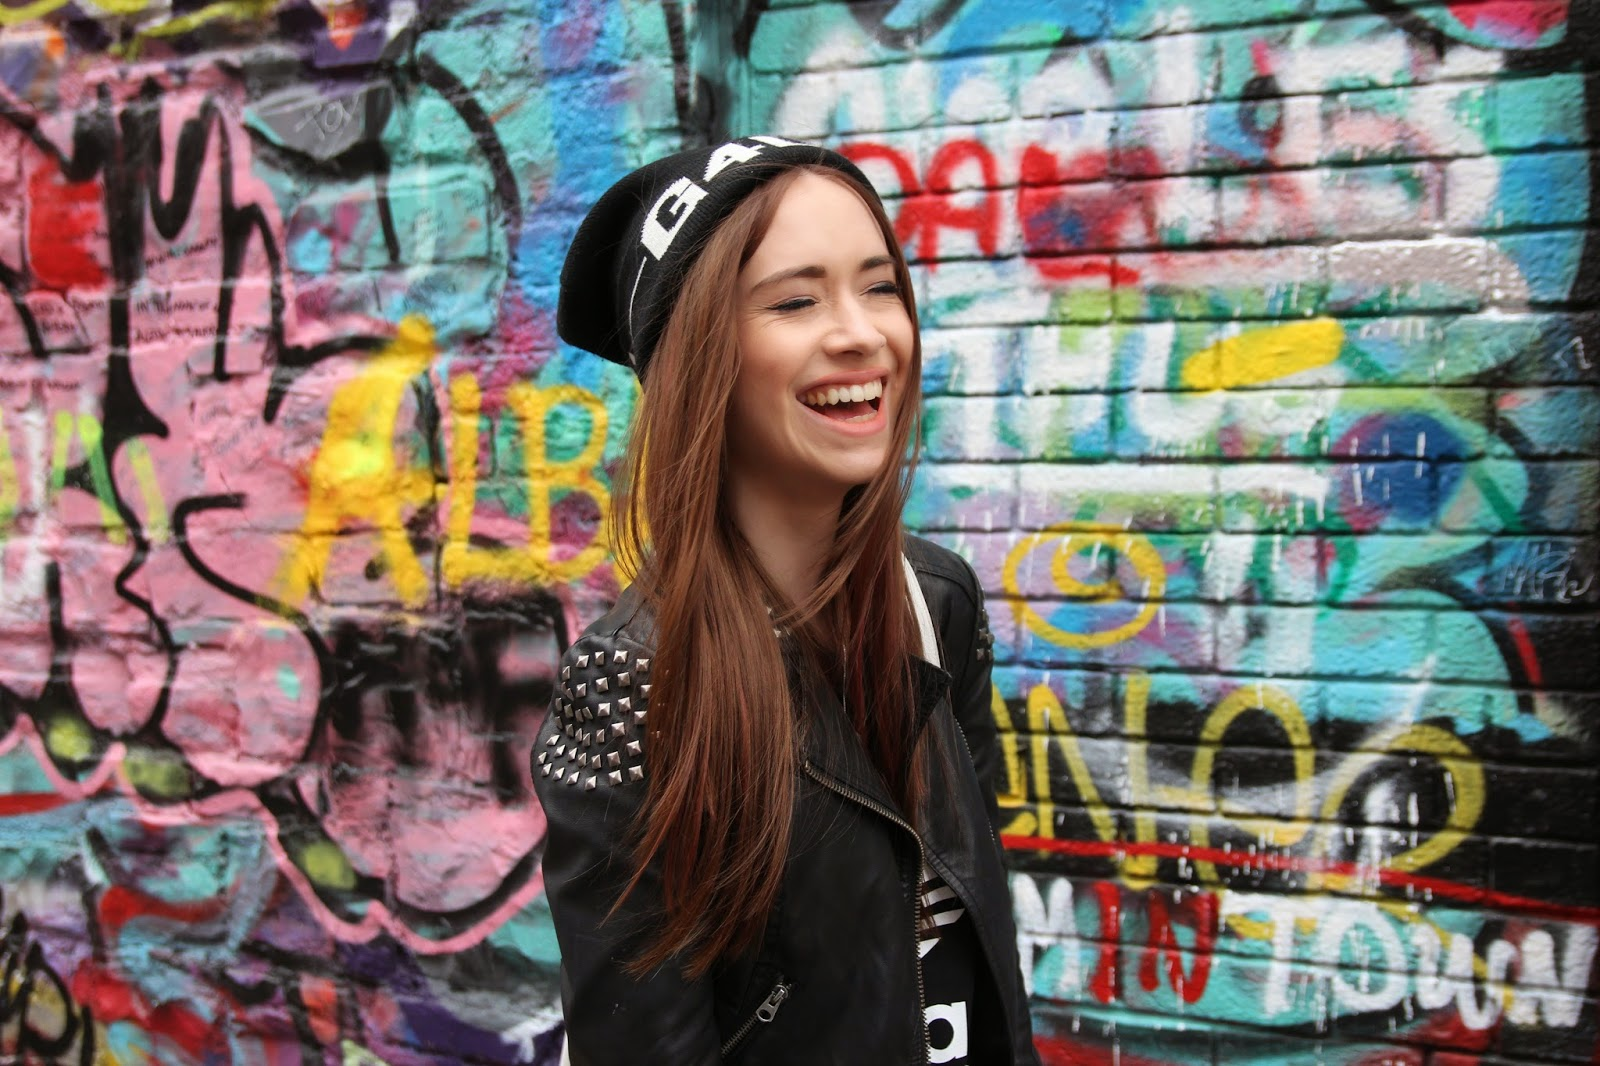 dublin, street art, street style, fashion, blogger, fashion blogger